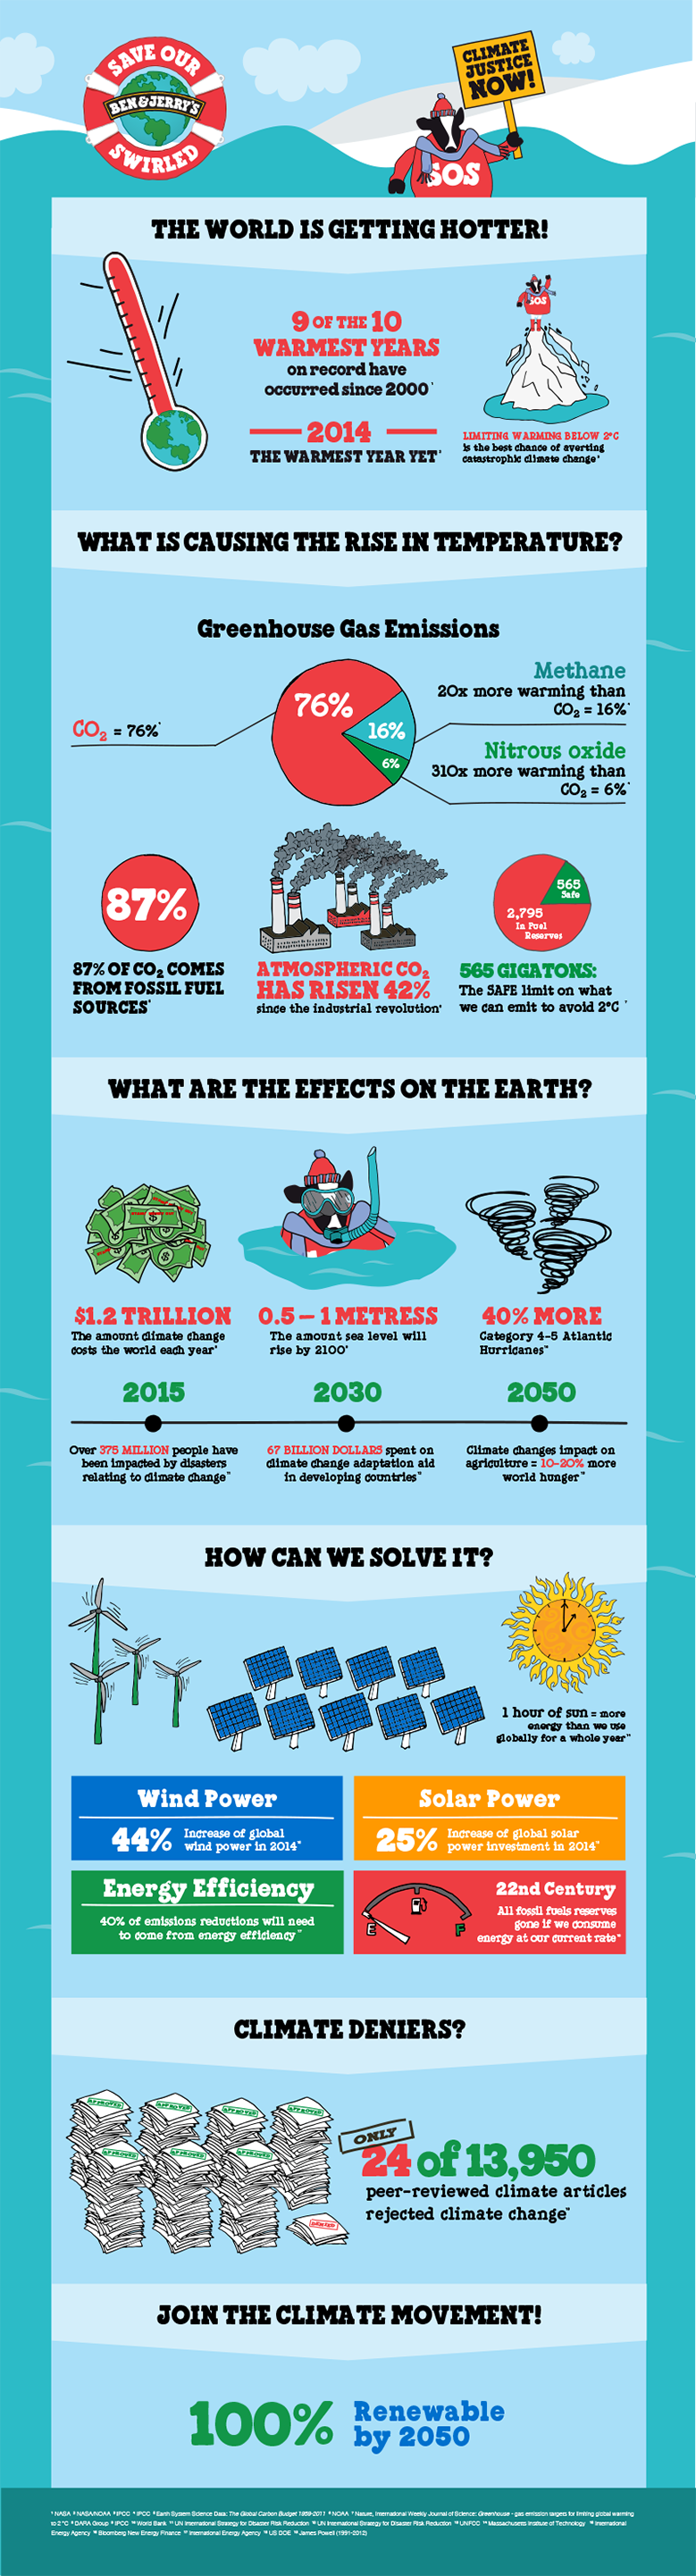 BJ_ClimateChange_Infographic_English-(United-Kingdom)_TypeSet.png